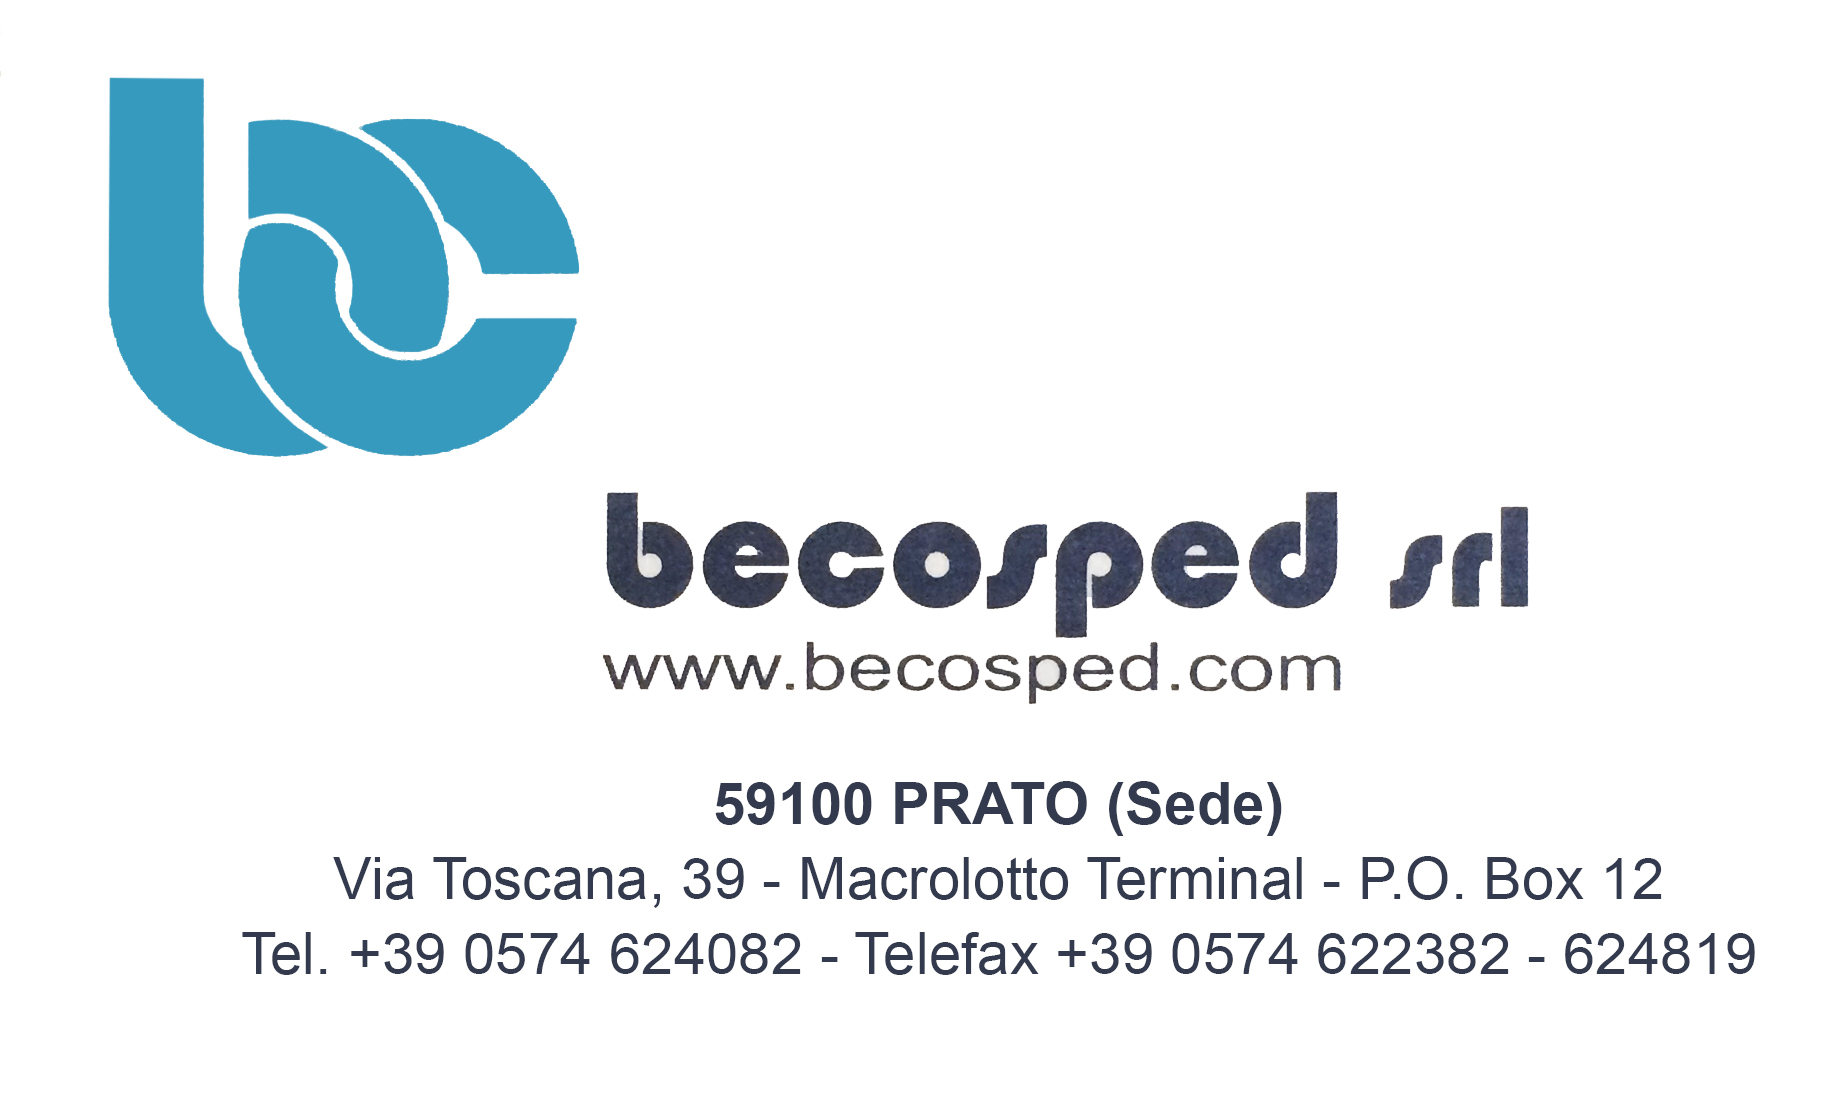 Becosped